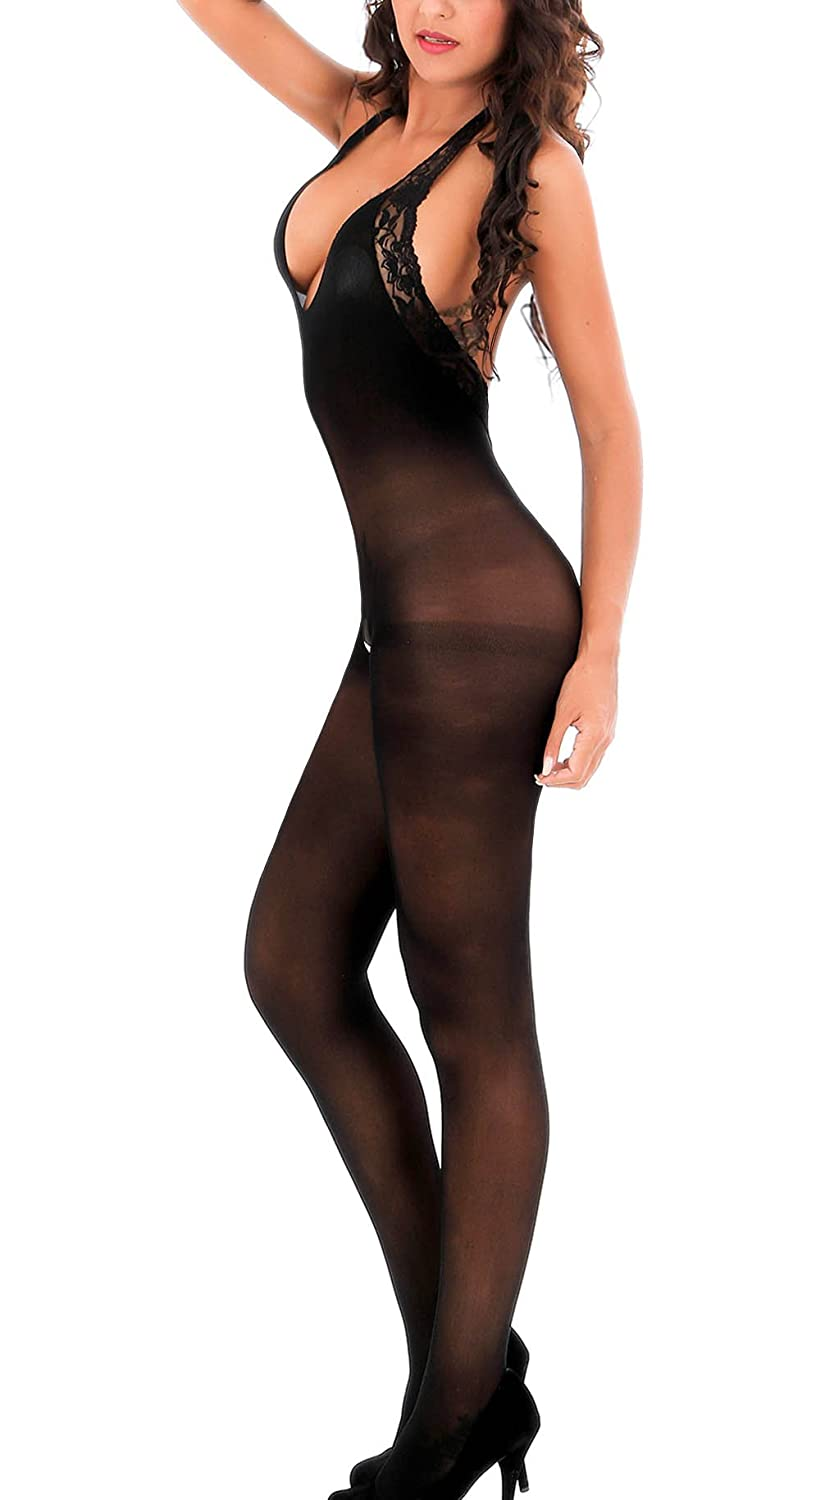 70f621e3e Material   93.4% Nylon.   Polyester and spandex. Hand-wash only. Imported Sexy  sheer black opaque bodystocking features halter top with stretch lace trim  ...